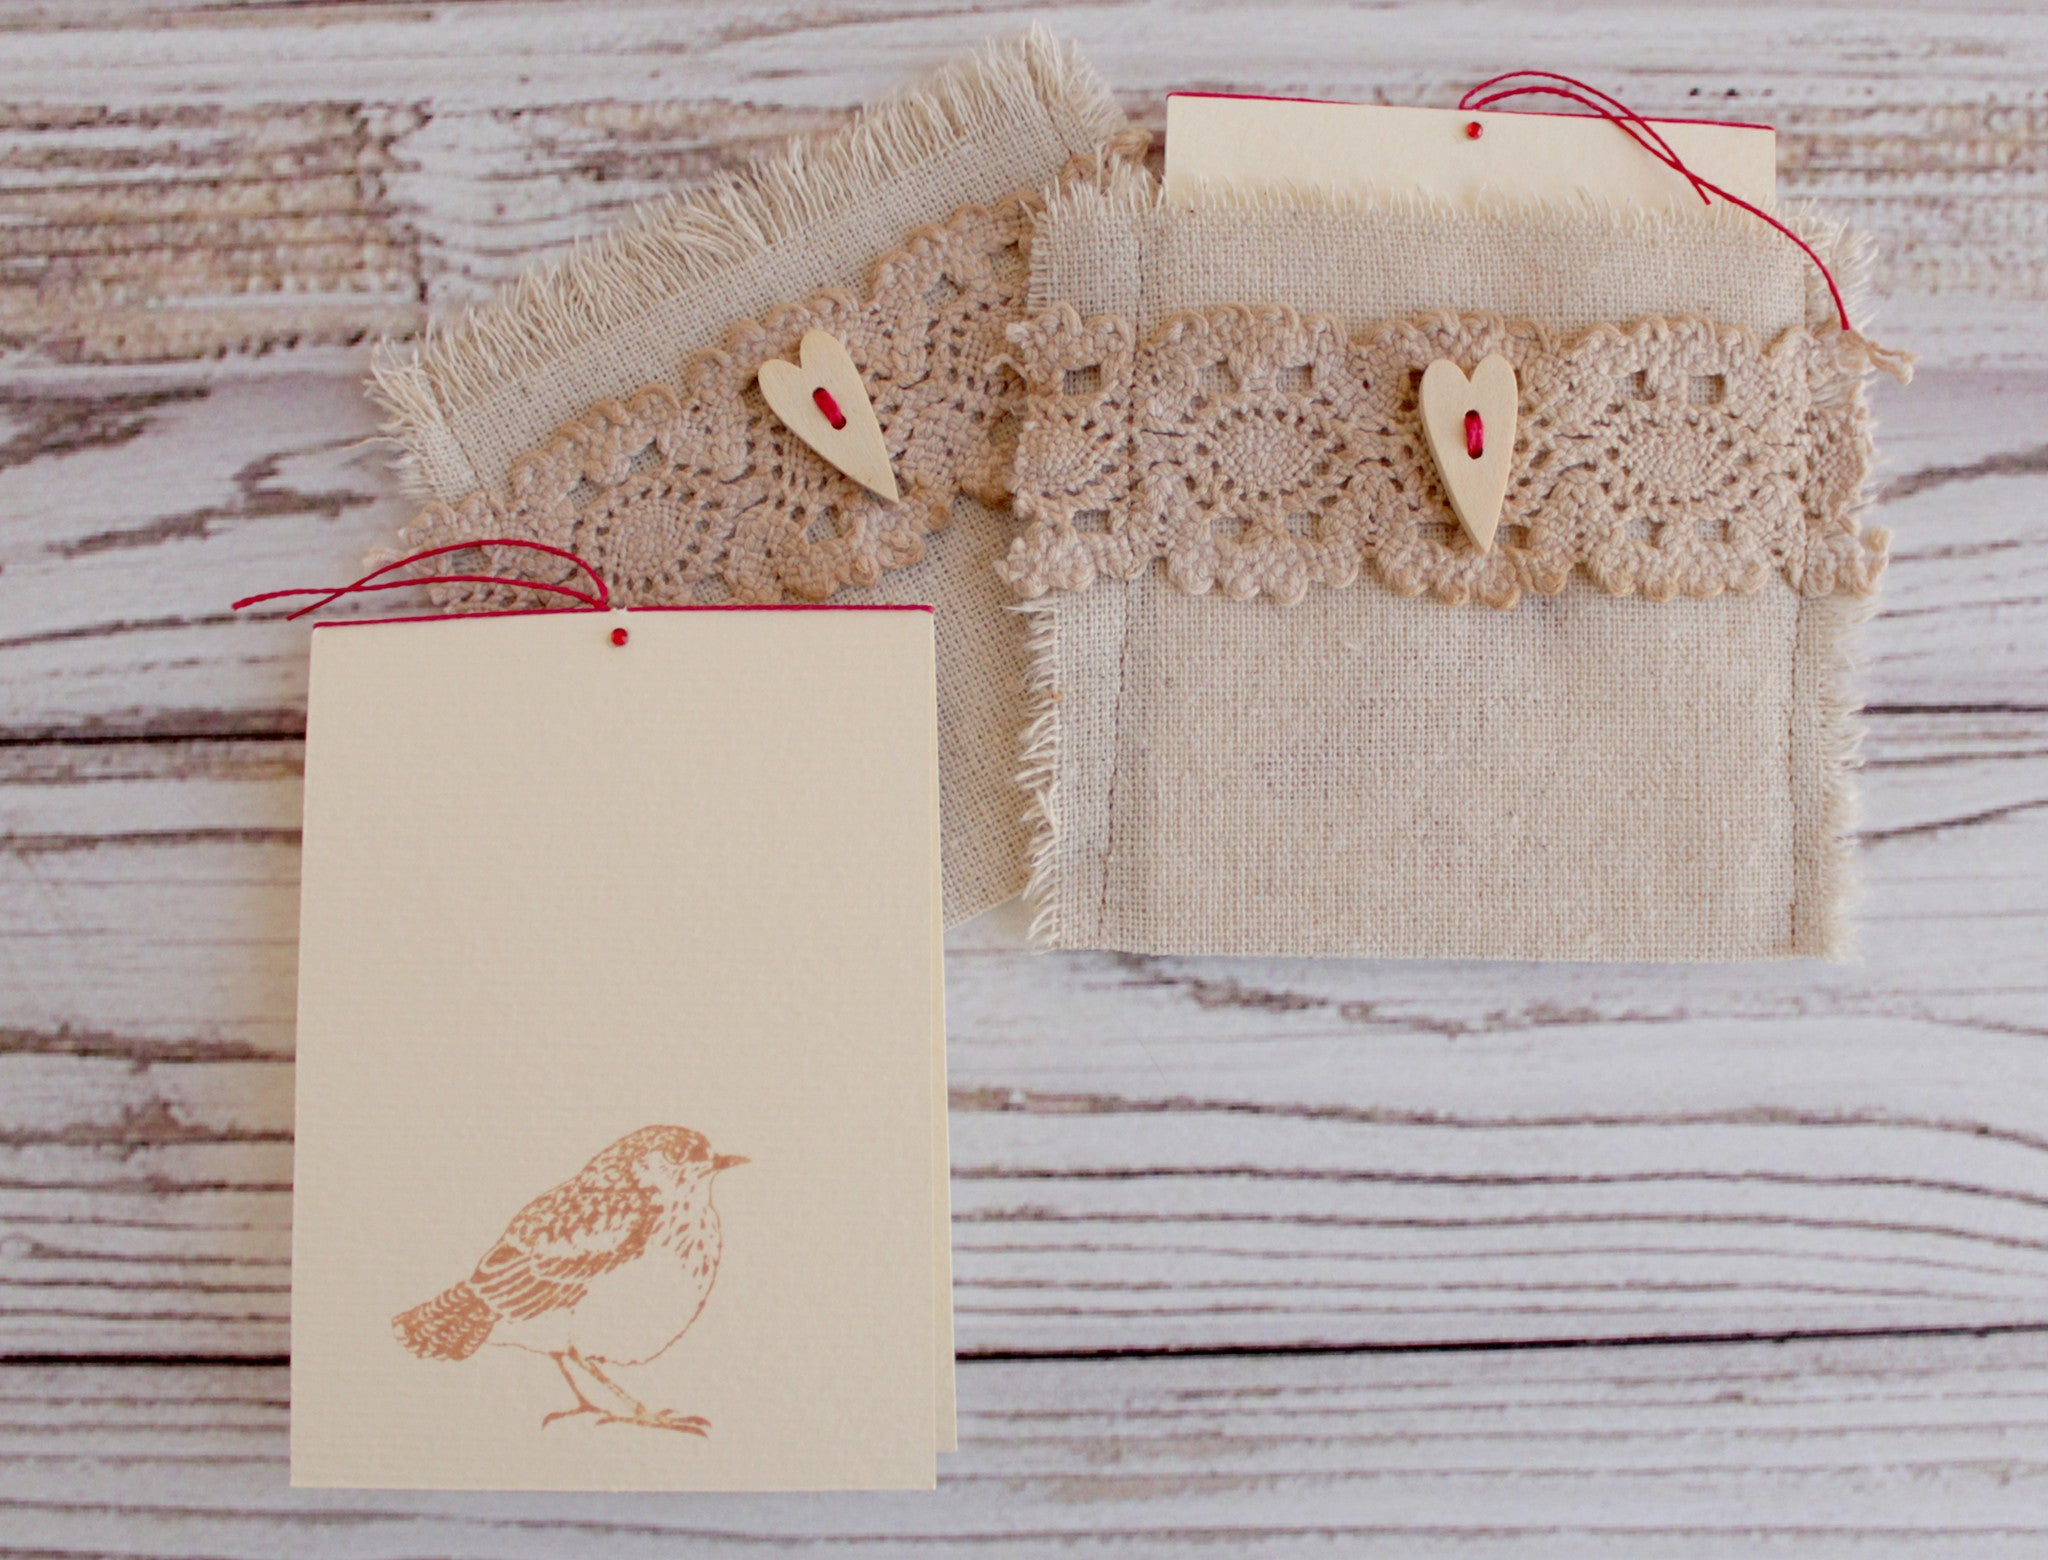 Blank greeting card in natural linen envelope